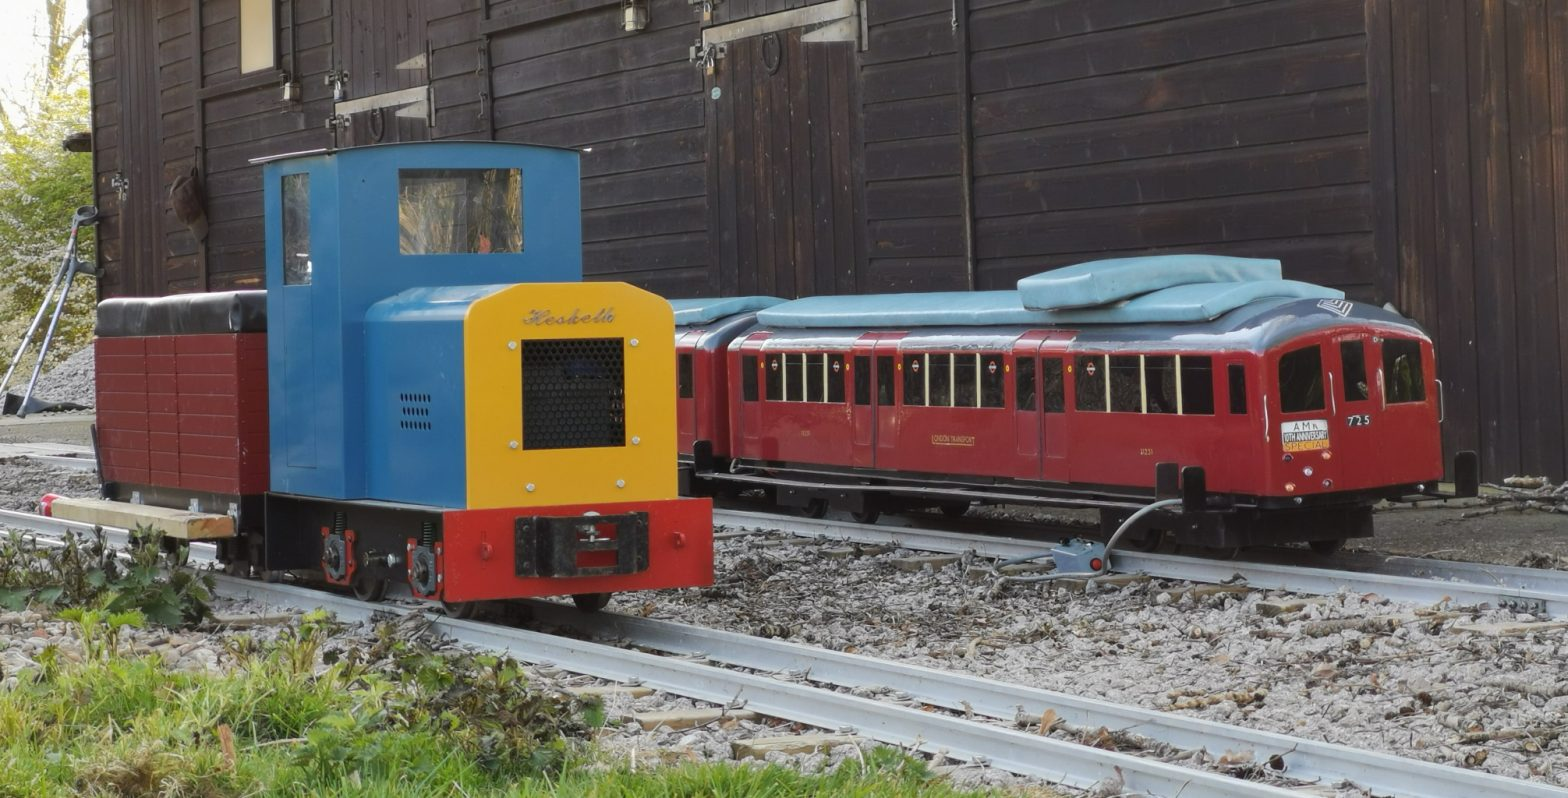 Diesel Shunter & Little Red Train